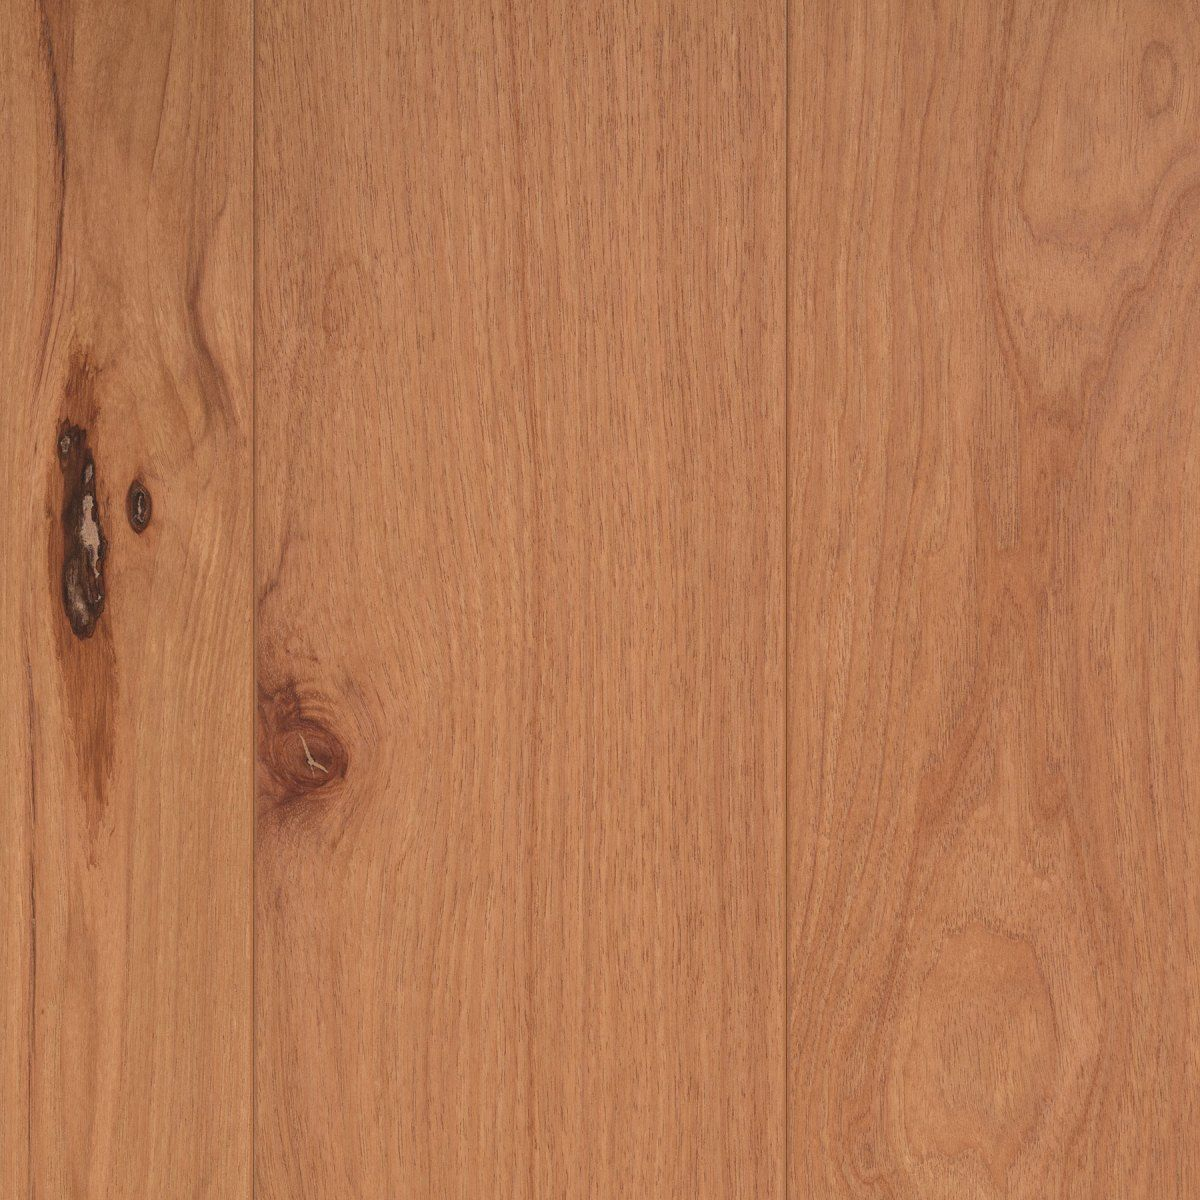 Longevity Hickory Autumn Real Wood Floors Wood Colors Indoor Air Quality